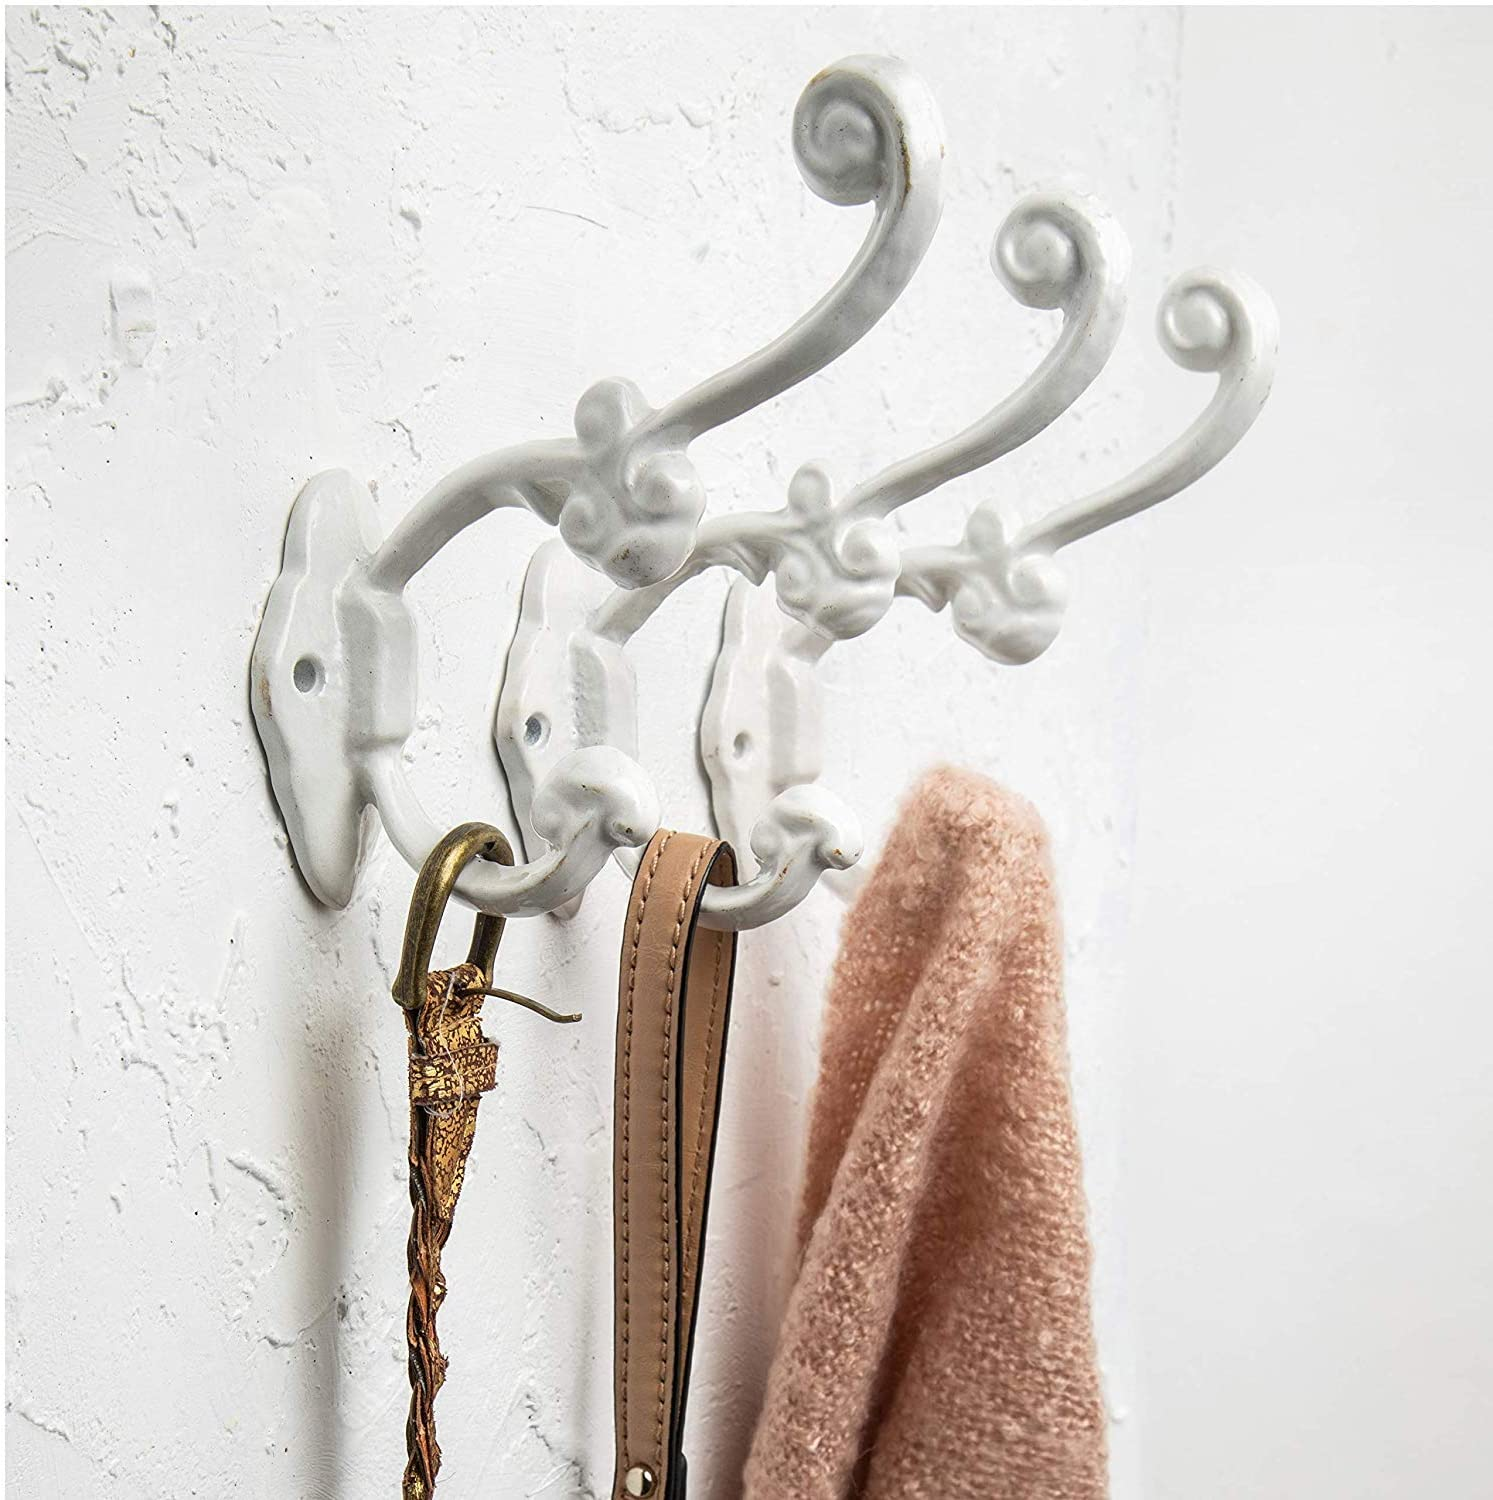 Towels and More Sturdy Cast Iron Hooks in Rustic Brown Color Shabby Chic Set of 4 Wall Mounted Hooks for Coats Vintage Hooks for Farmhouse D/écor Bags Decorative Rustic Wall Hooks